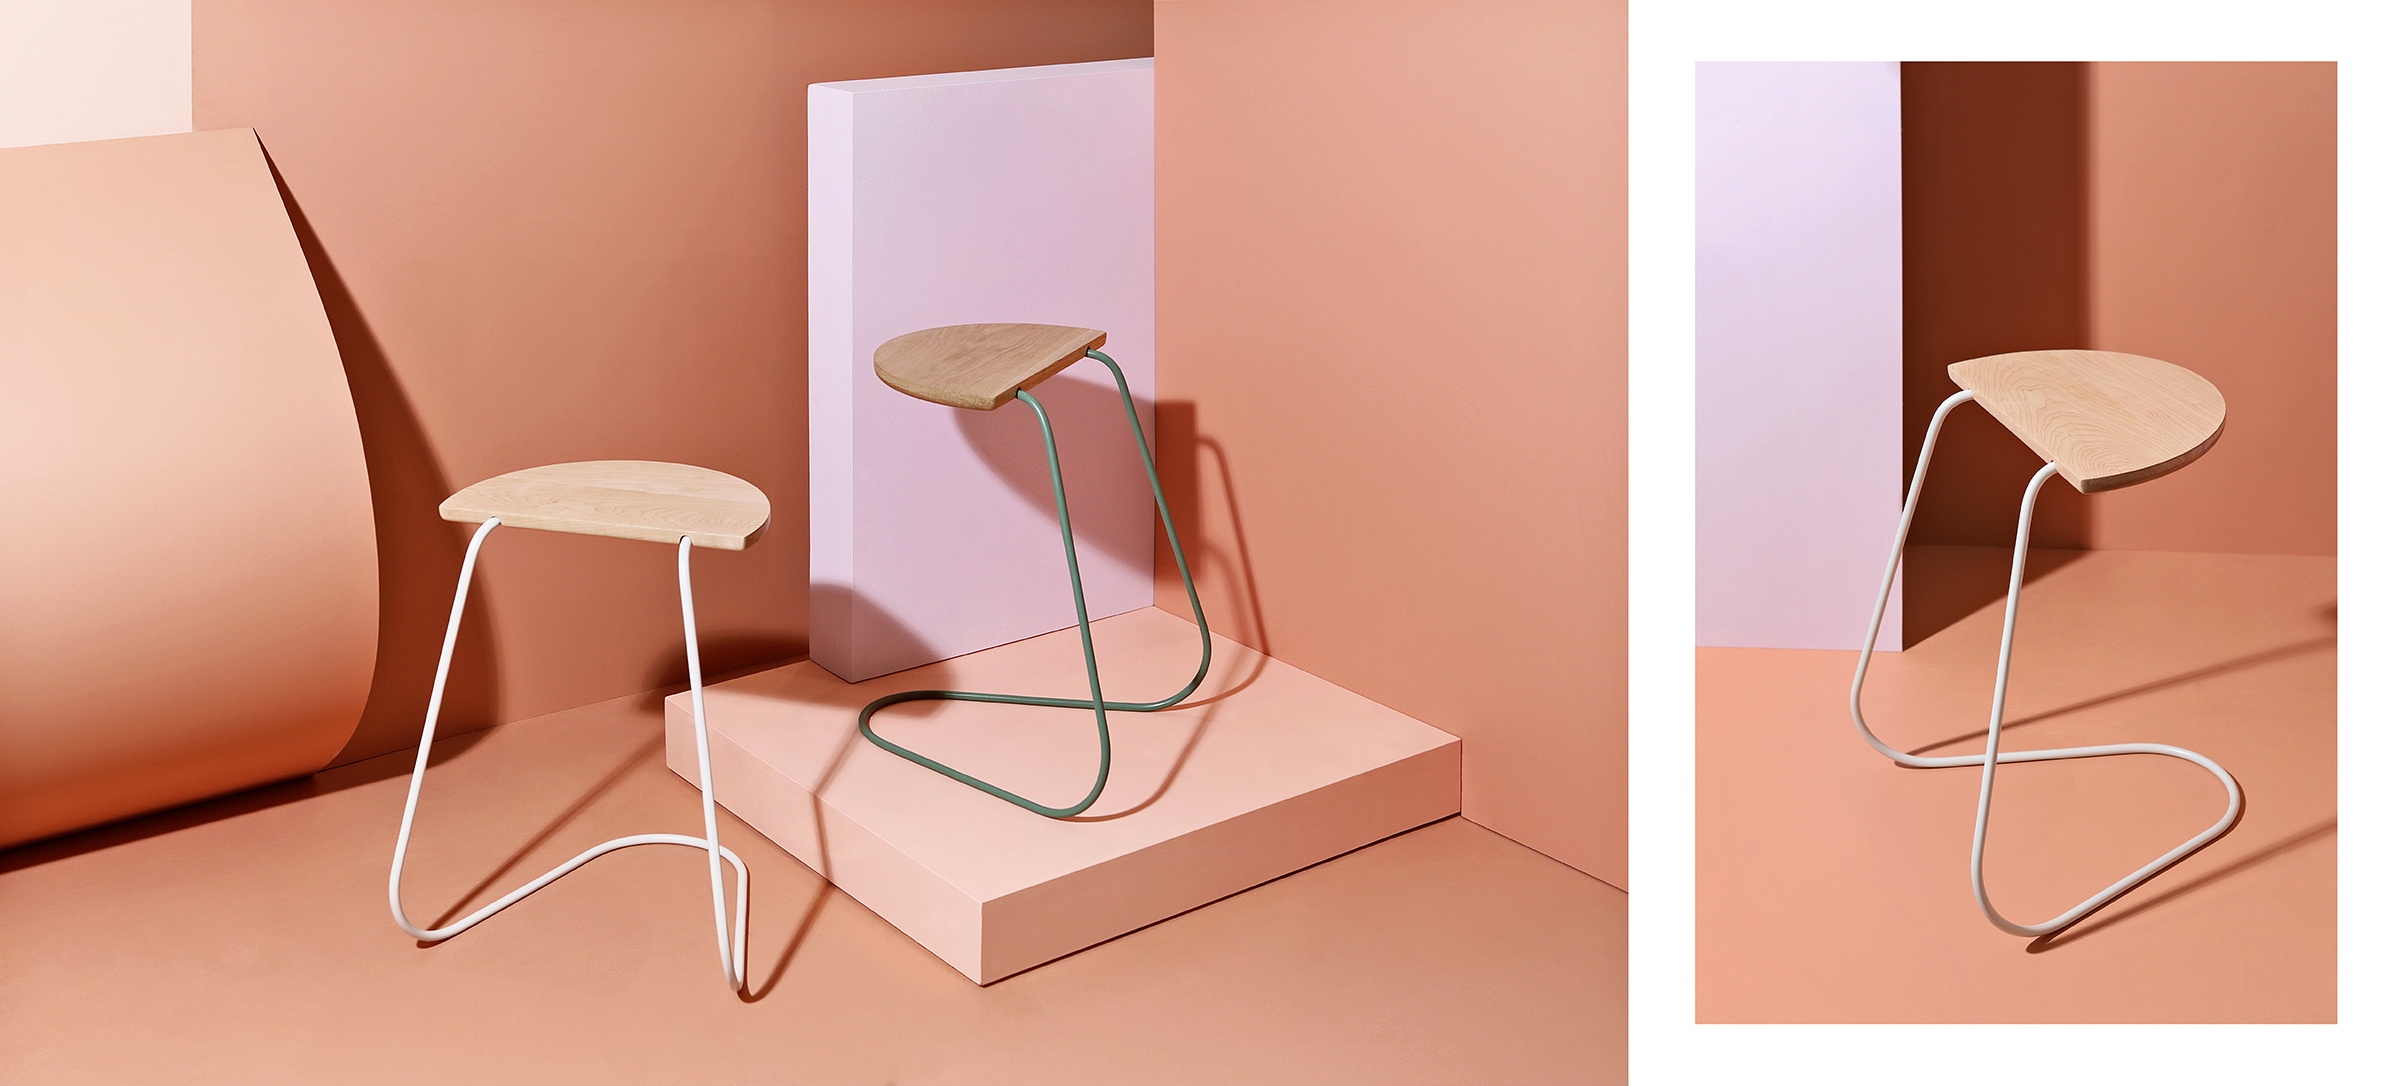 DESIGNER TONIELLE DEMPERS, THE LOODEY SNR TABLE  |  COLLABORATION WITH CREATIVE ISABELLA BENJAMIN